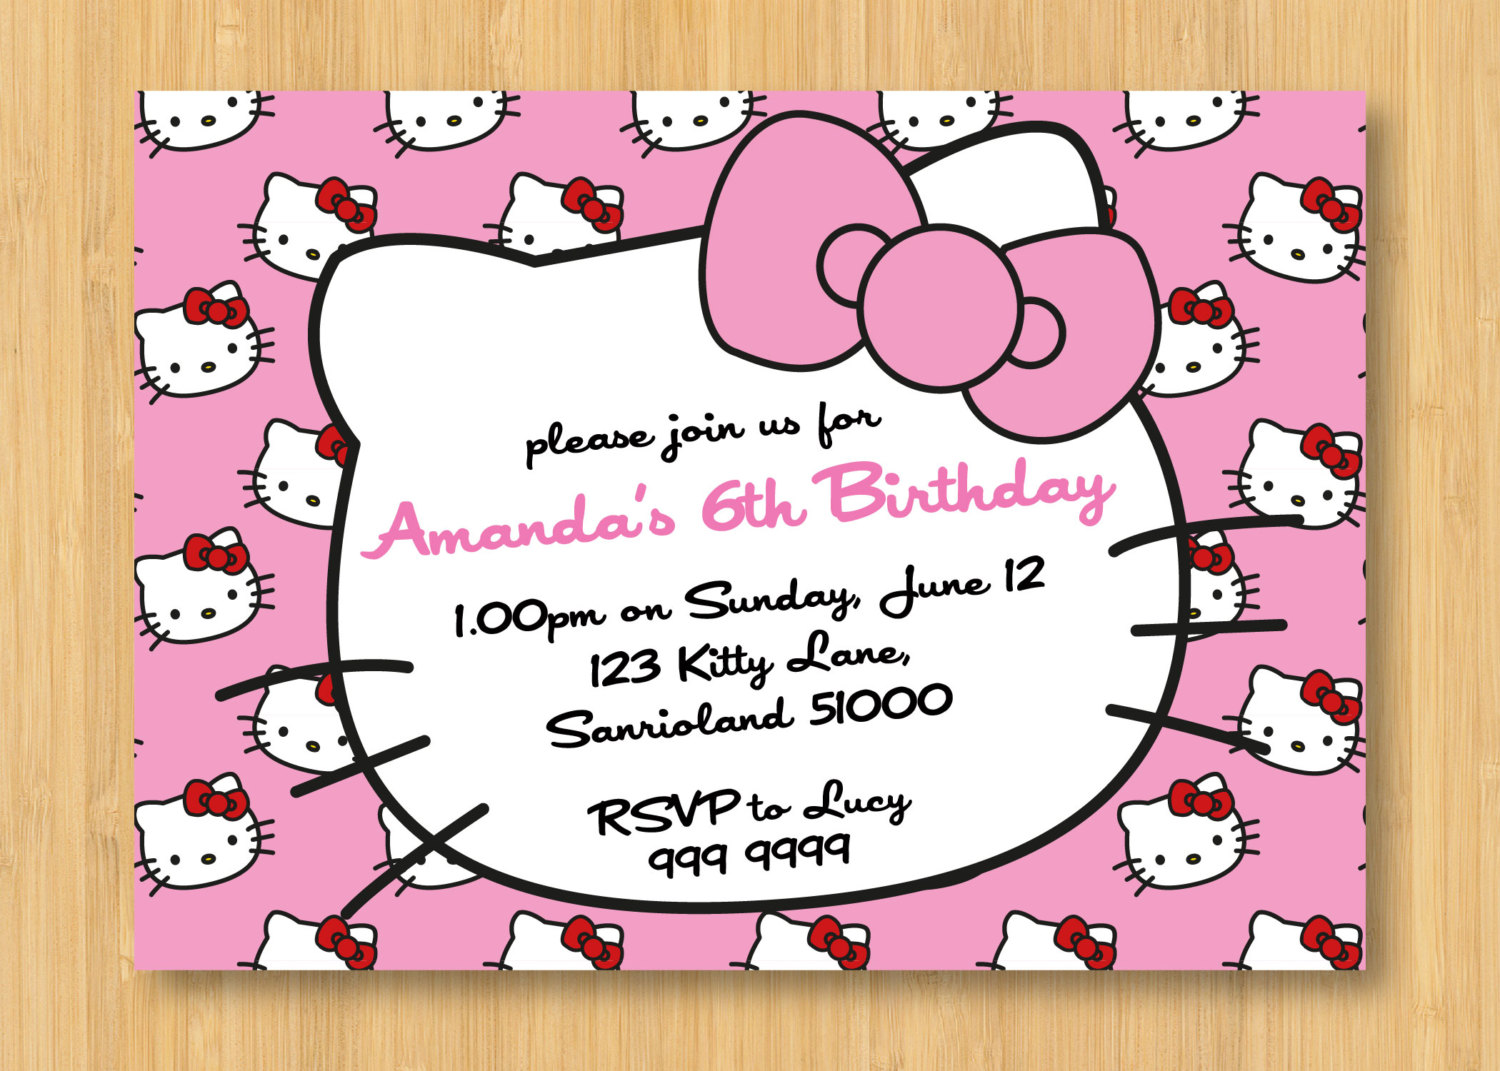 birthday invitation hello kitty theme ; 8fcca8a2bd628bb94c6ad55e60af0609